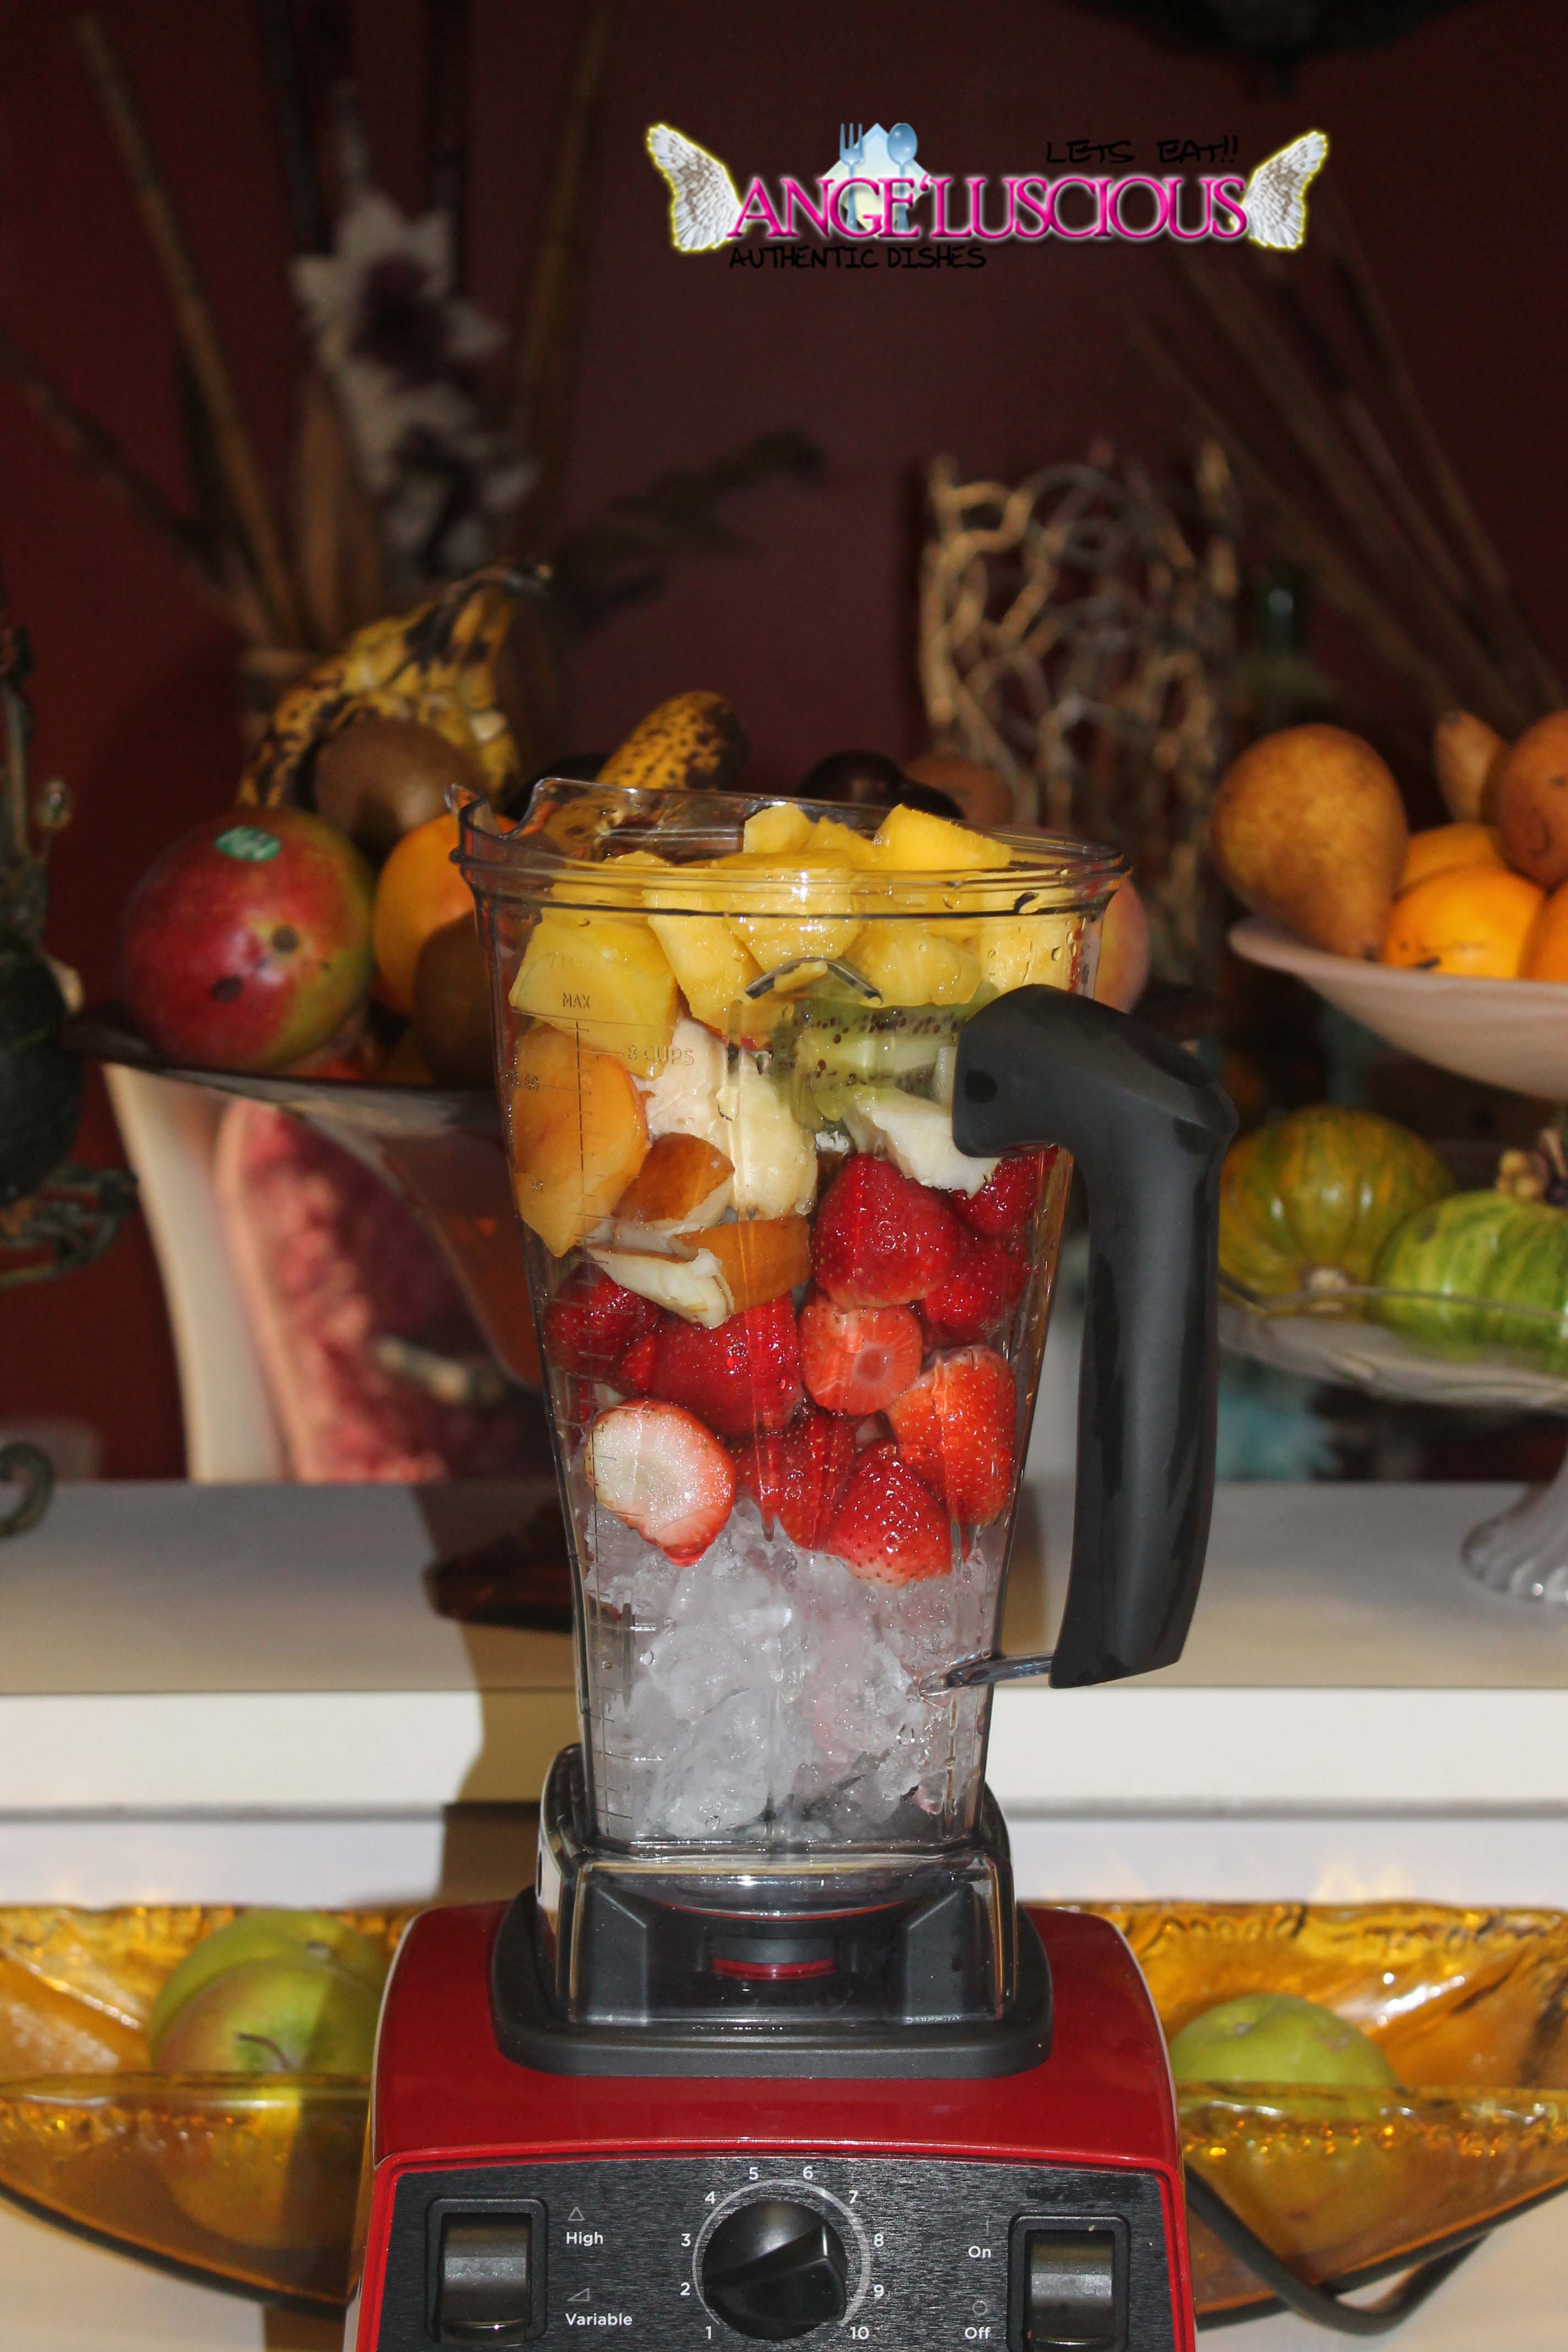 Awesome smoothie